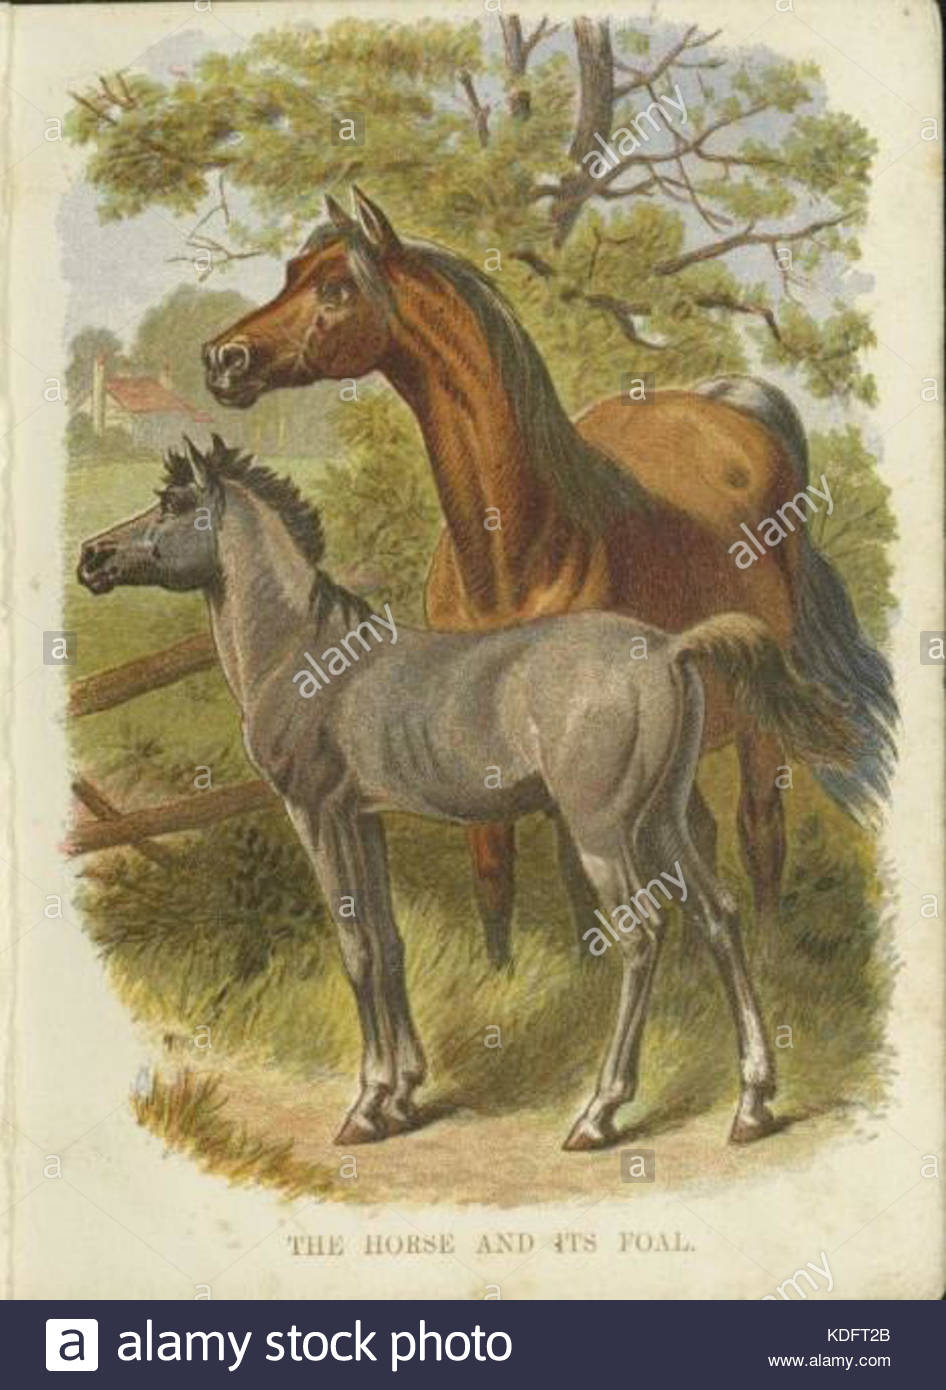 946x1390 Horse With Foal Drawing Stock Photo, Royalty Free Image 163232003